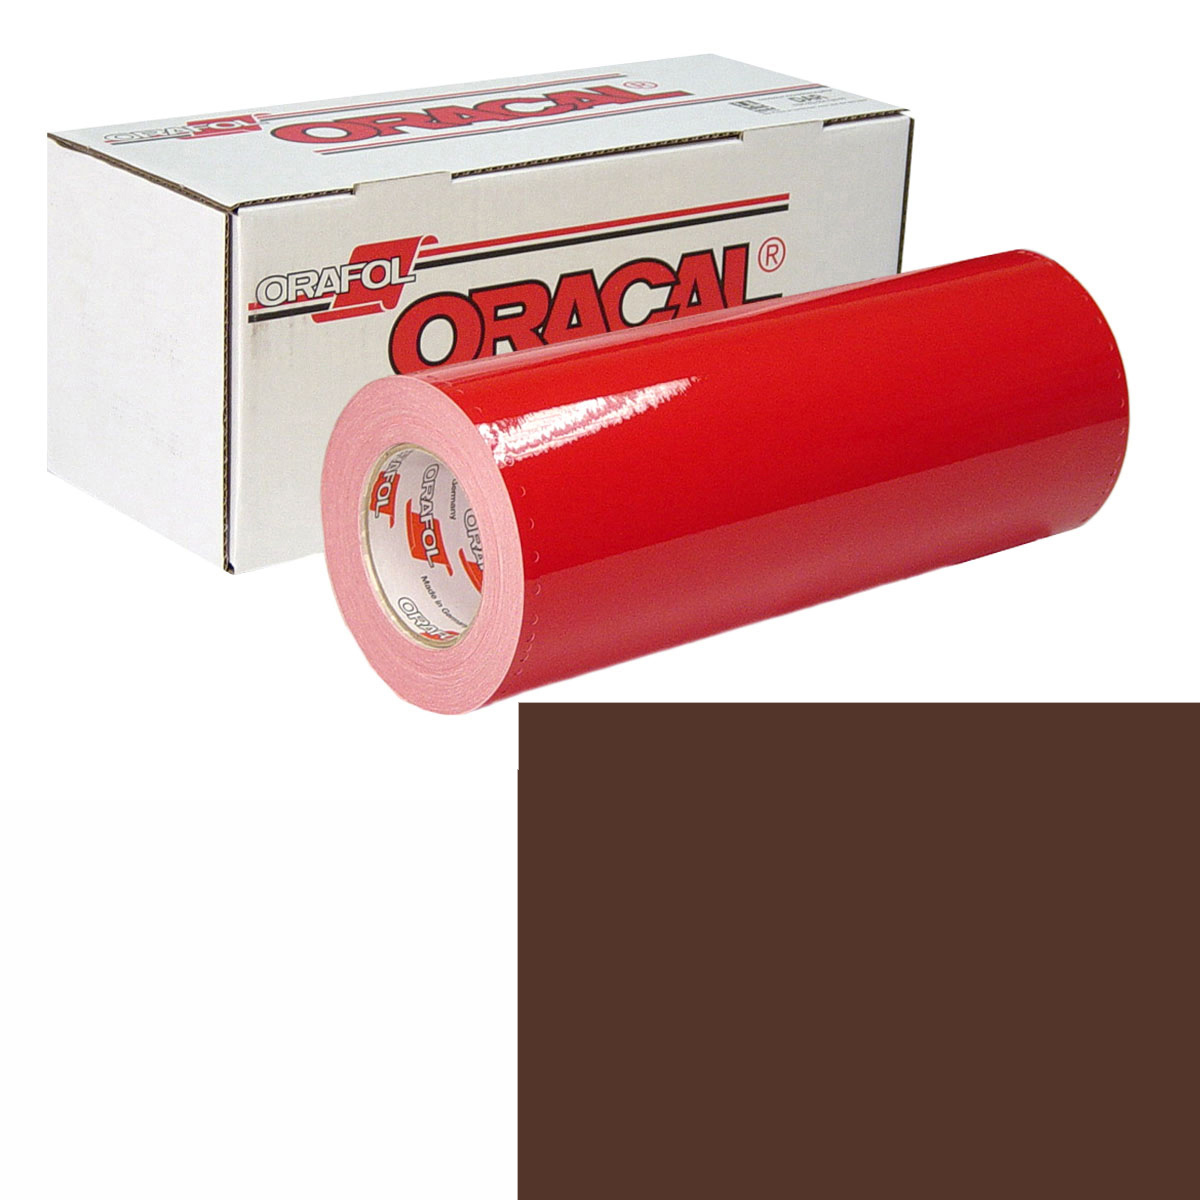 ORACAL 951 Unp 24In X 10Yd 810 Cocoa Brown